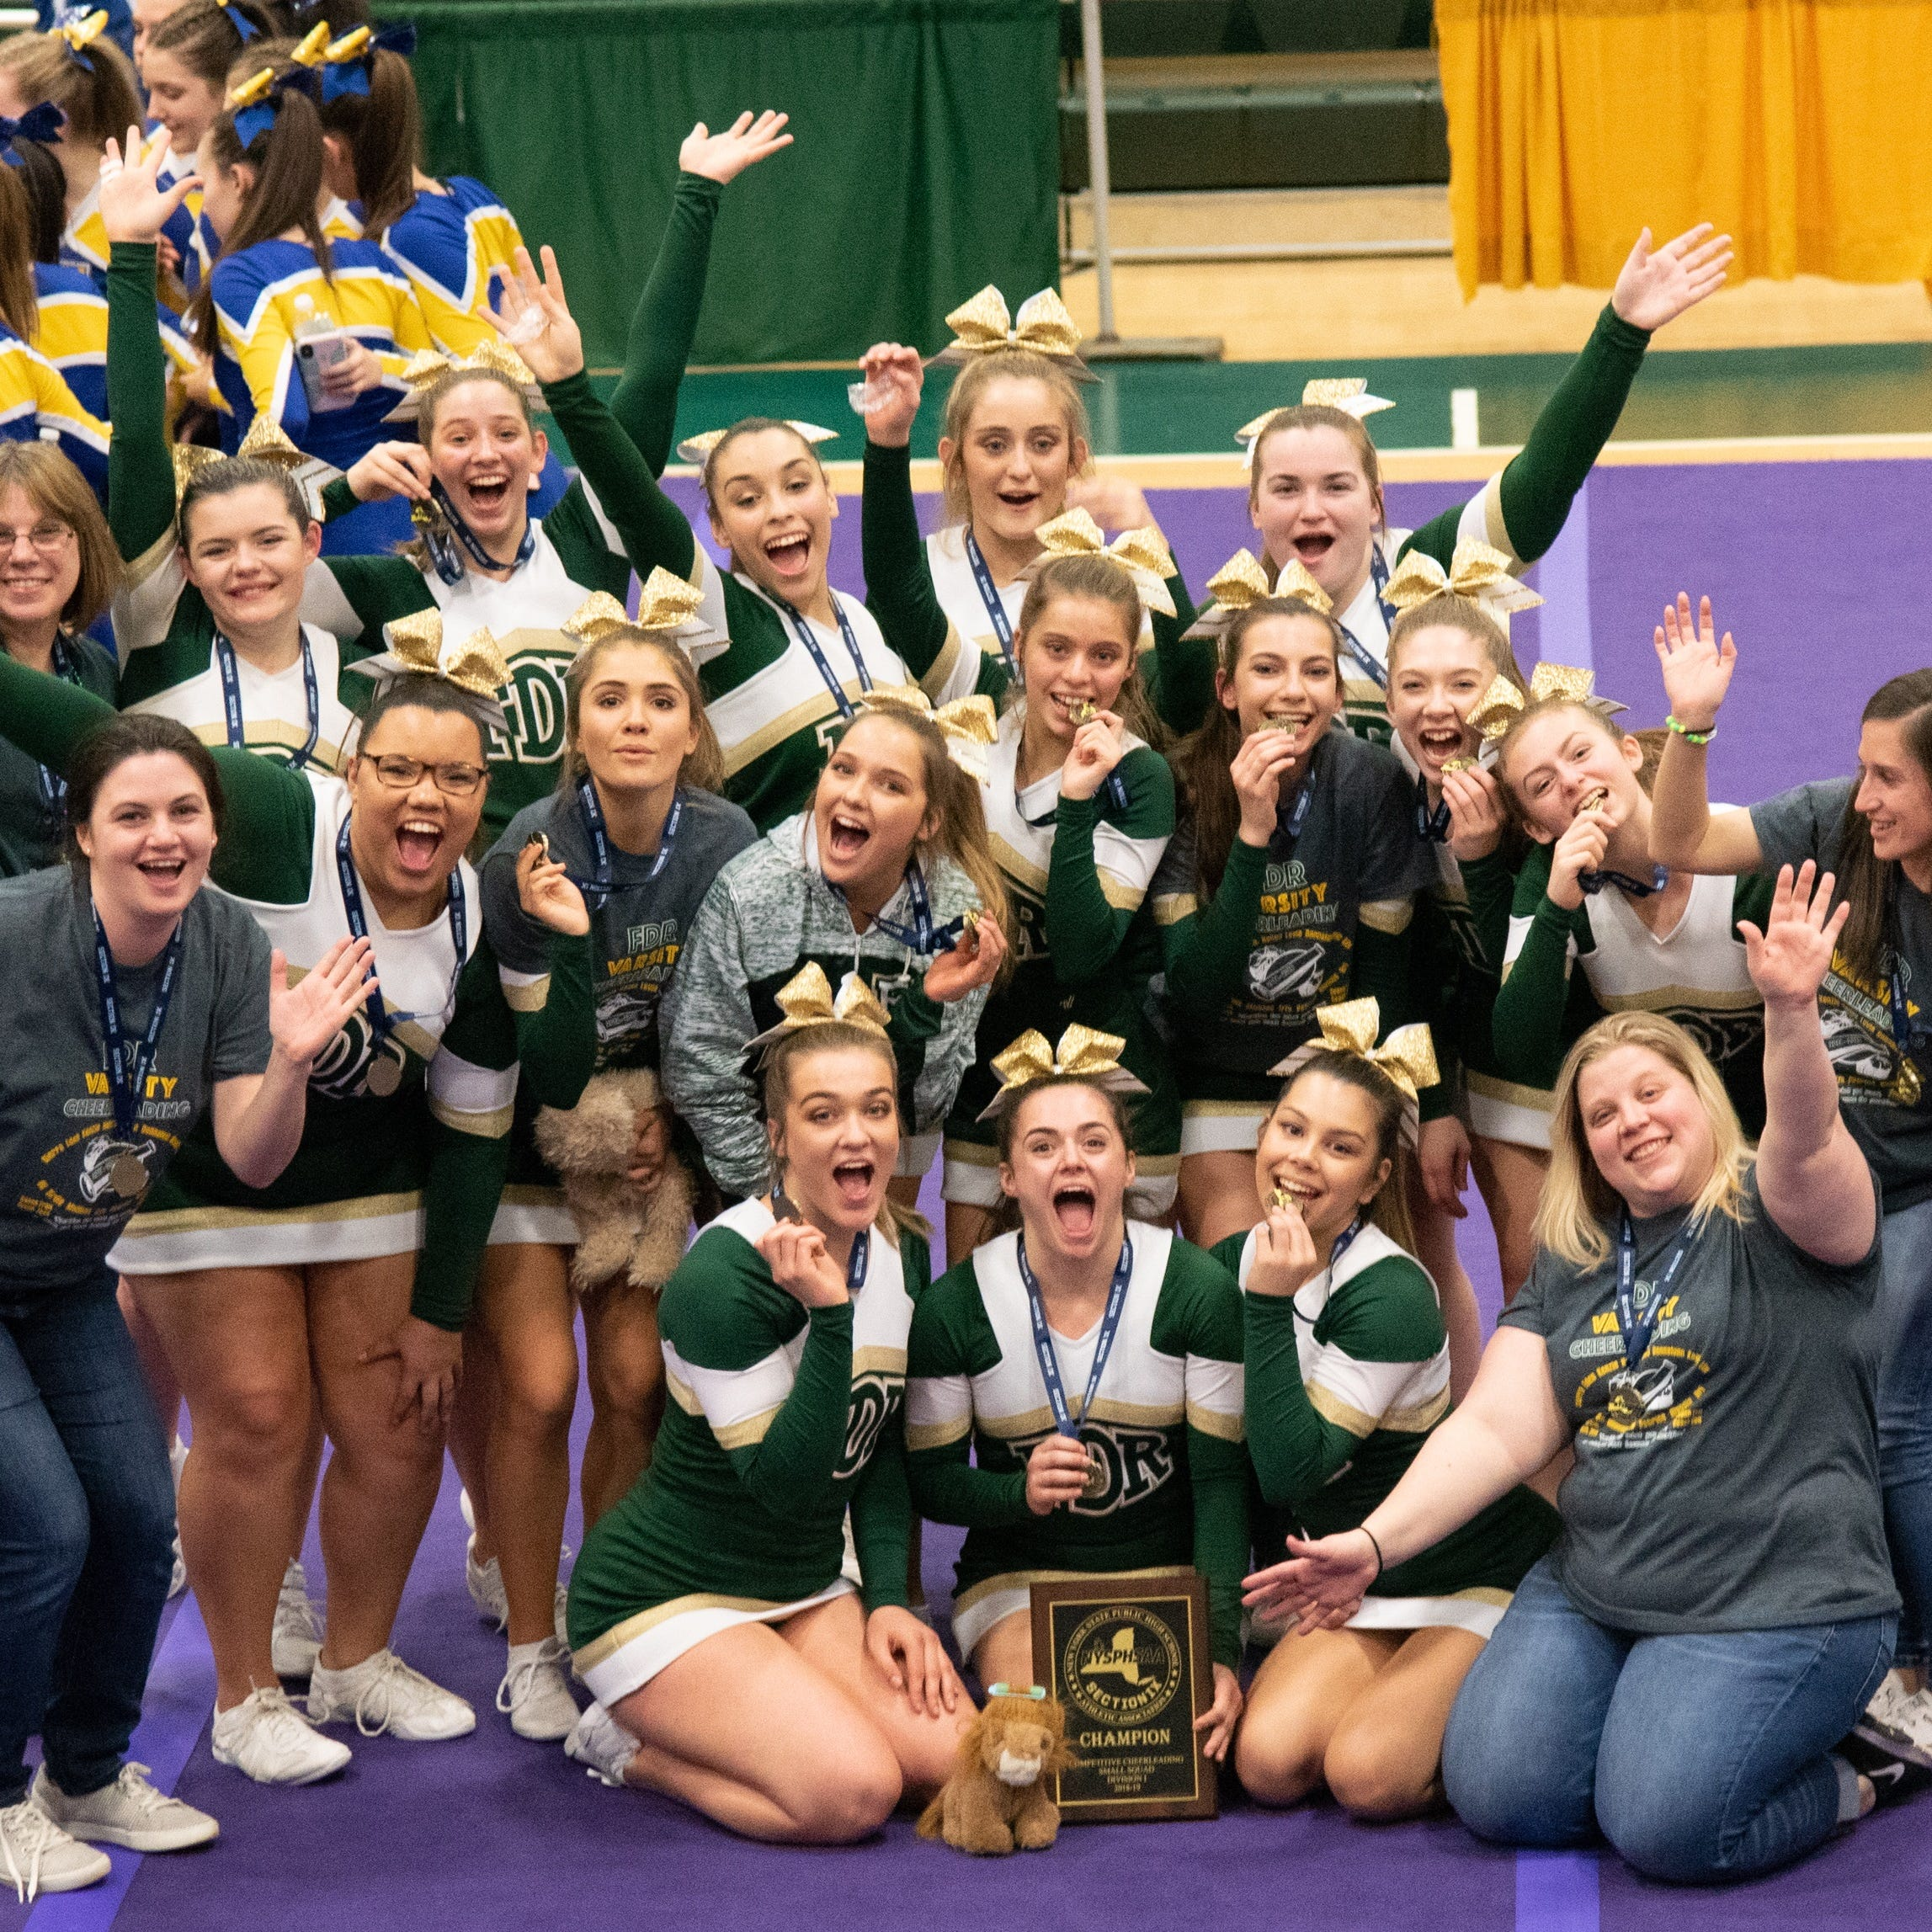 Roosevelt cheer overcomes adversity, captures third straight Section 9 title